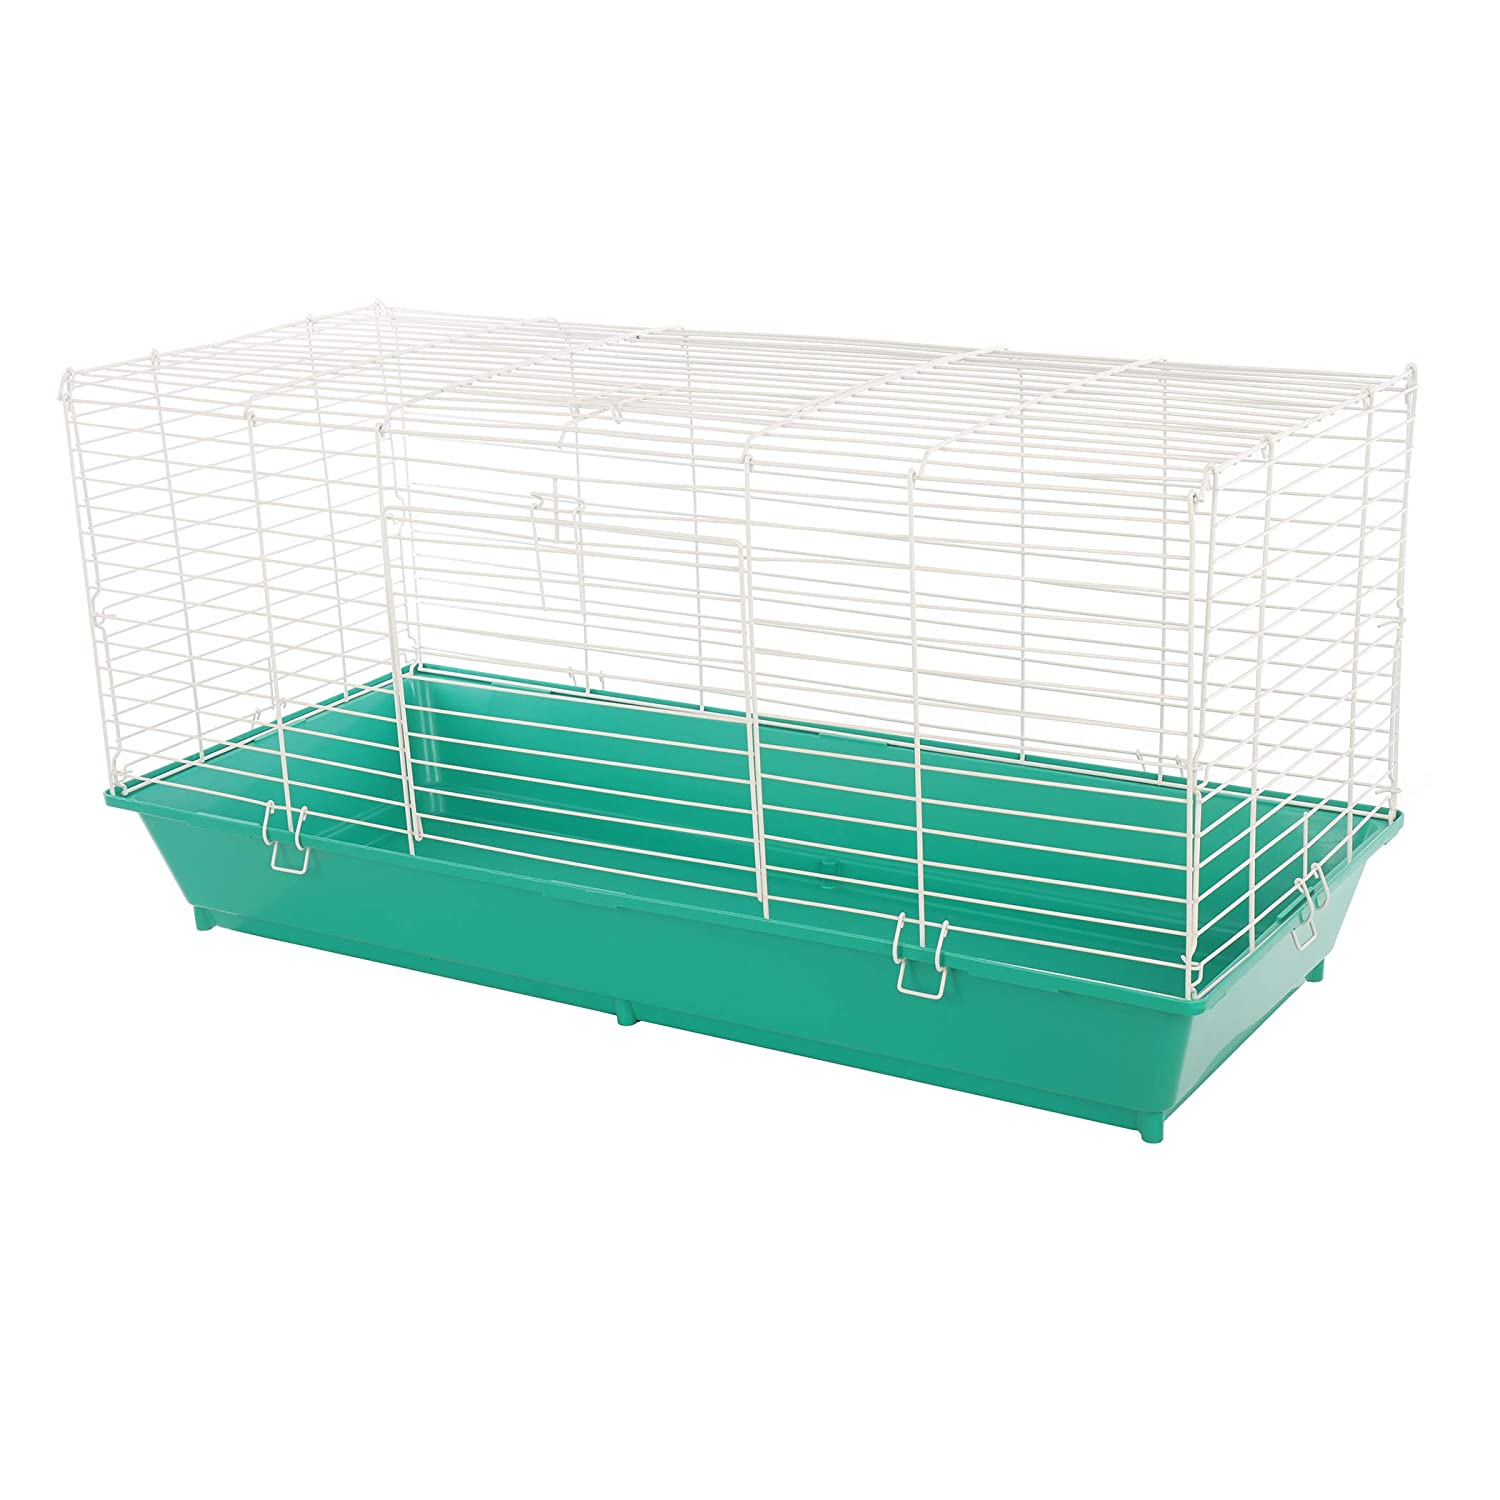 Large Ware Manufacturing Home Sweet Home Pet Cage for Small Animals 40 Inches colors May Vary